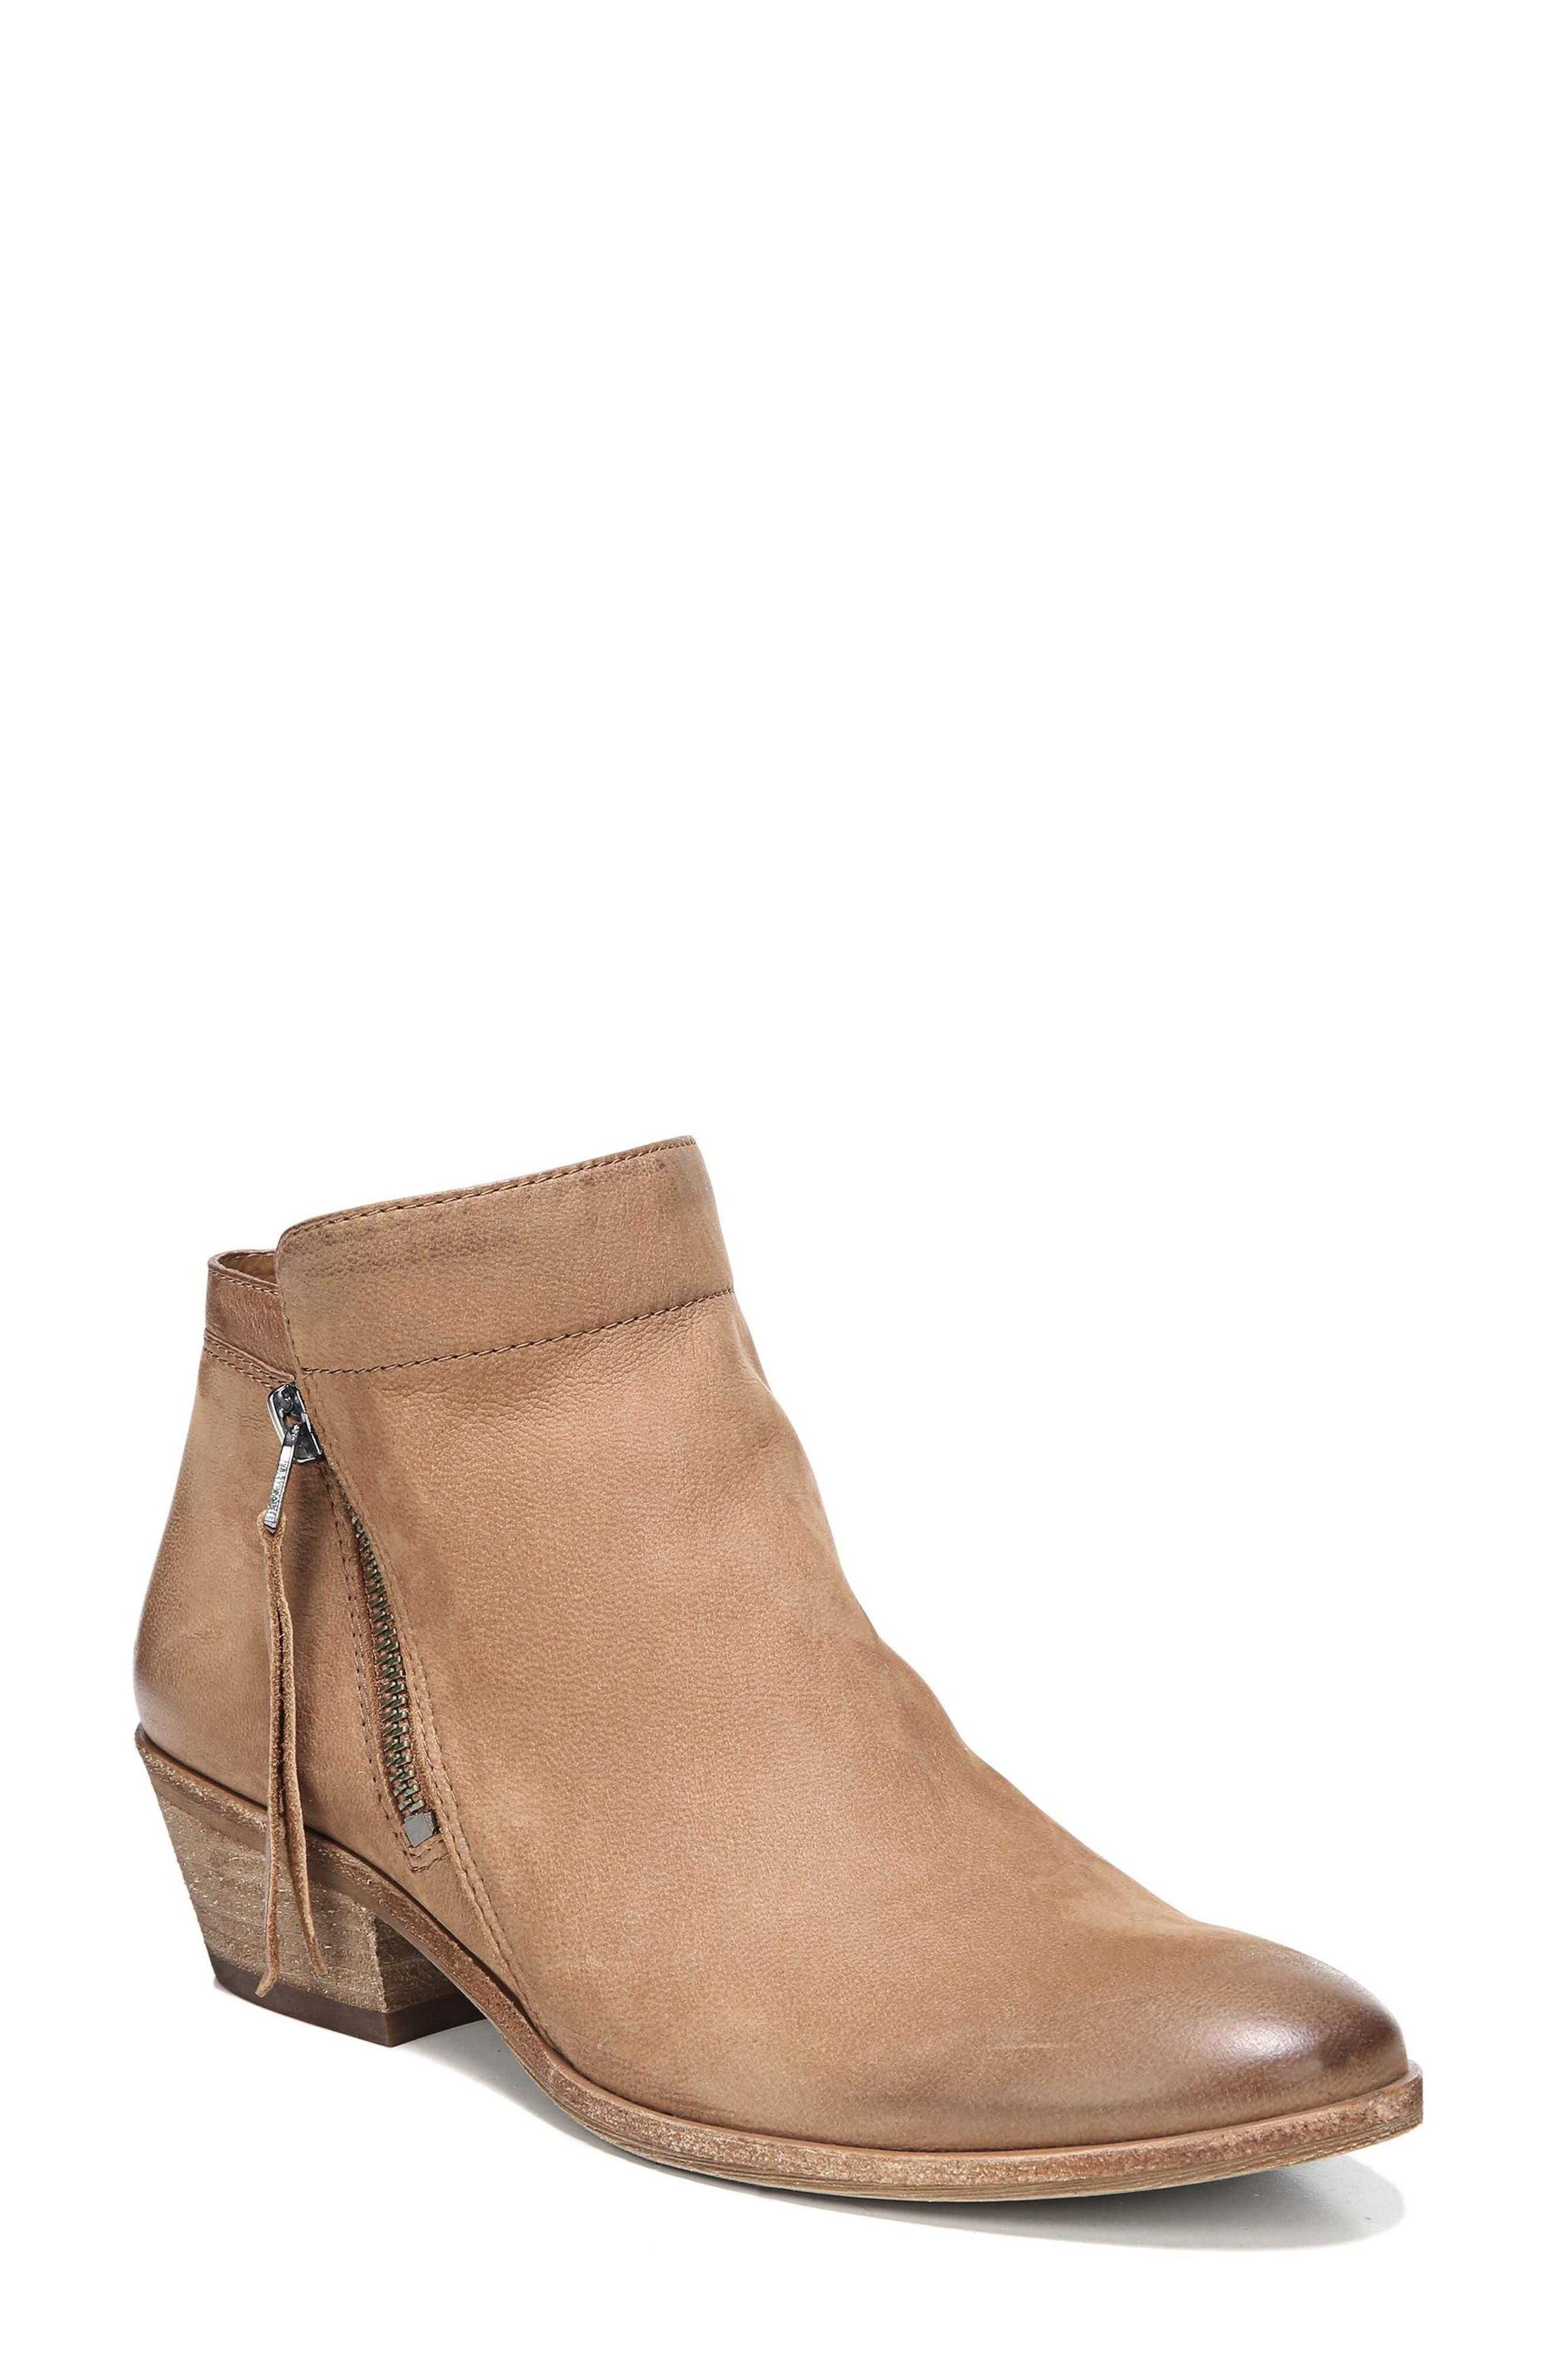 Packer Bootie,                         Main,                         color, DEEP SADDLE LEATHER